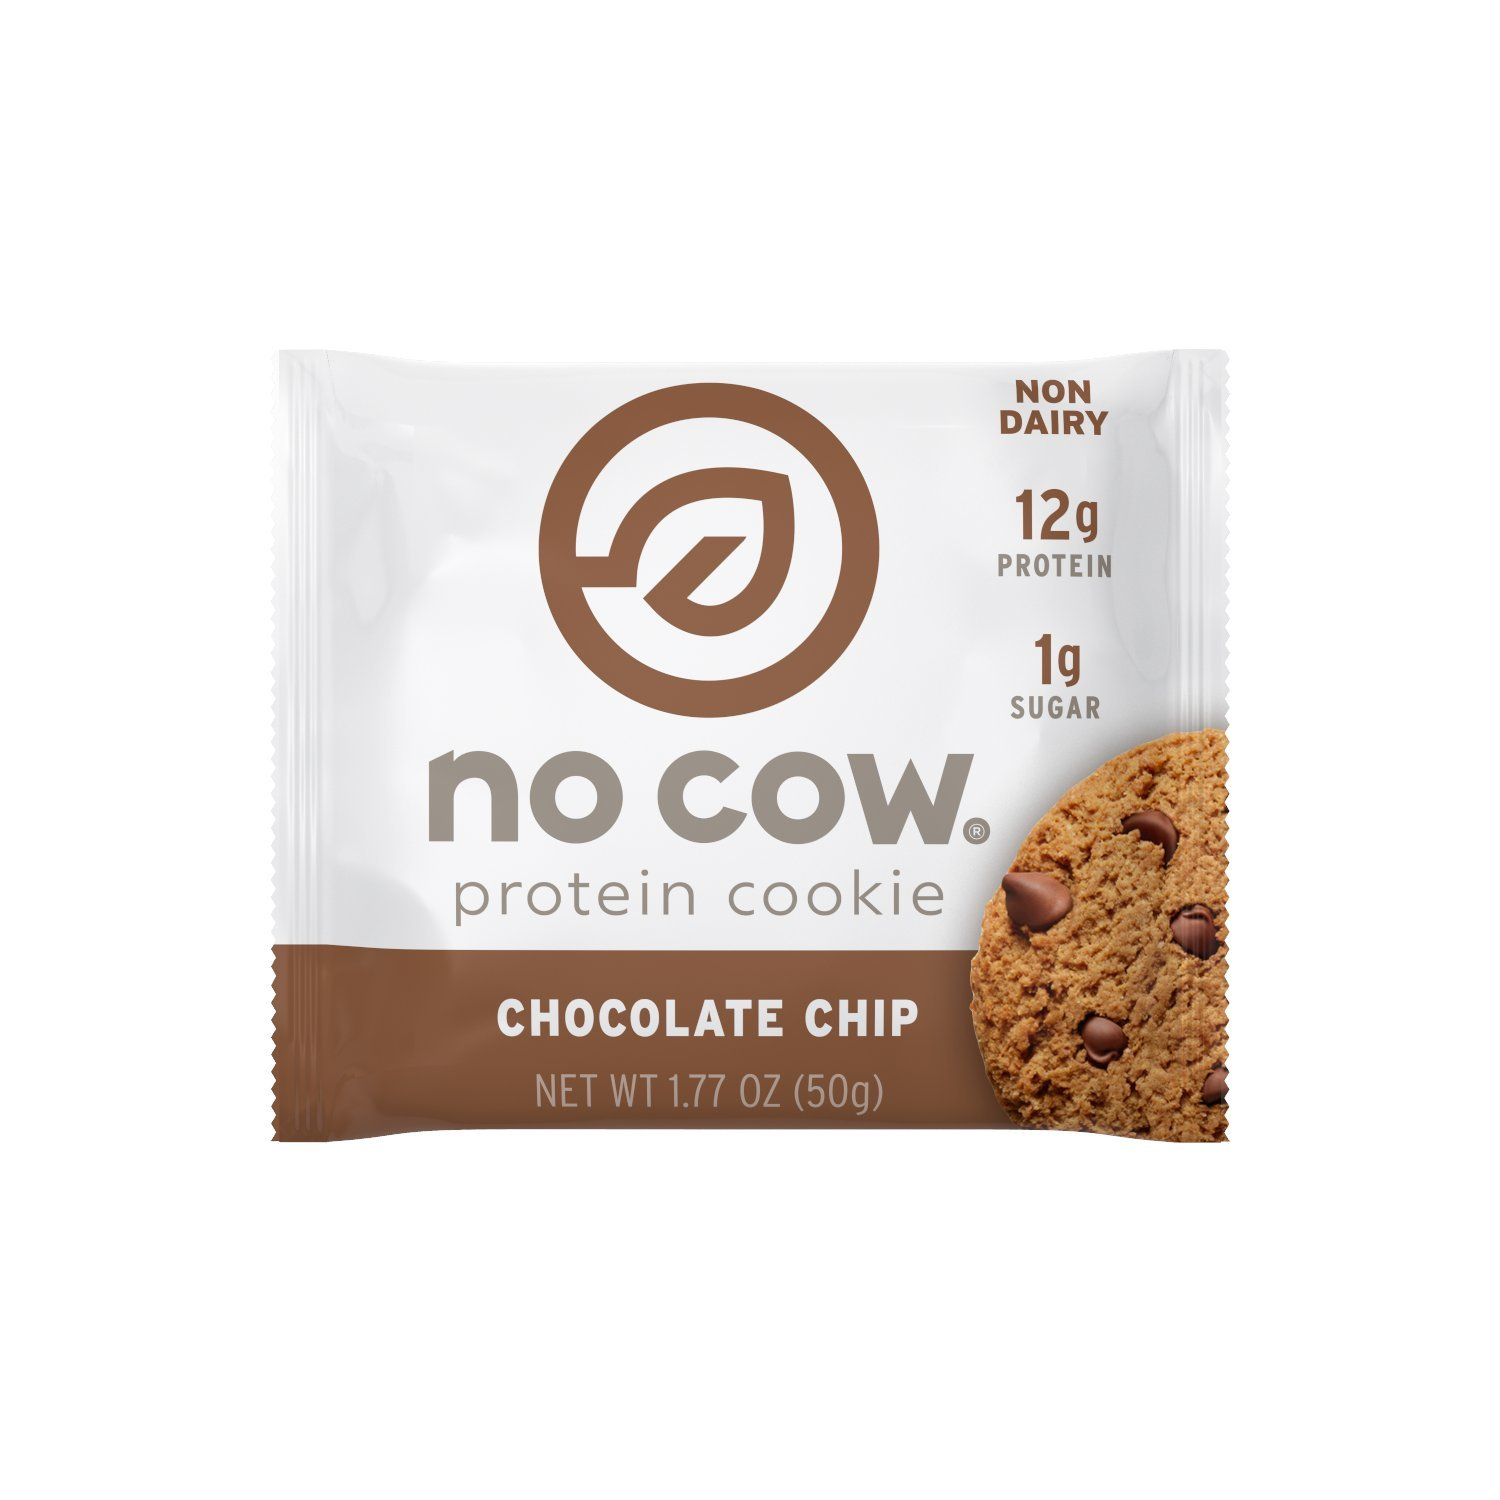 No Cow Protein Cookie, Chocolate Chip, 12g Plant Based Protein, Low Sugar, Dairy Free, Gluten Free, Vegan,